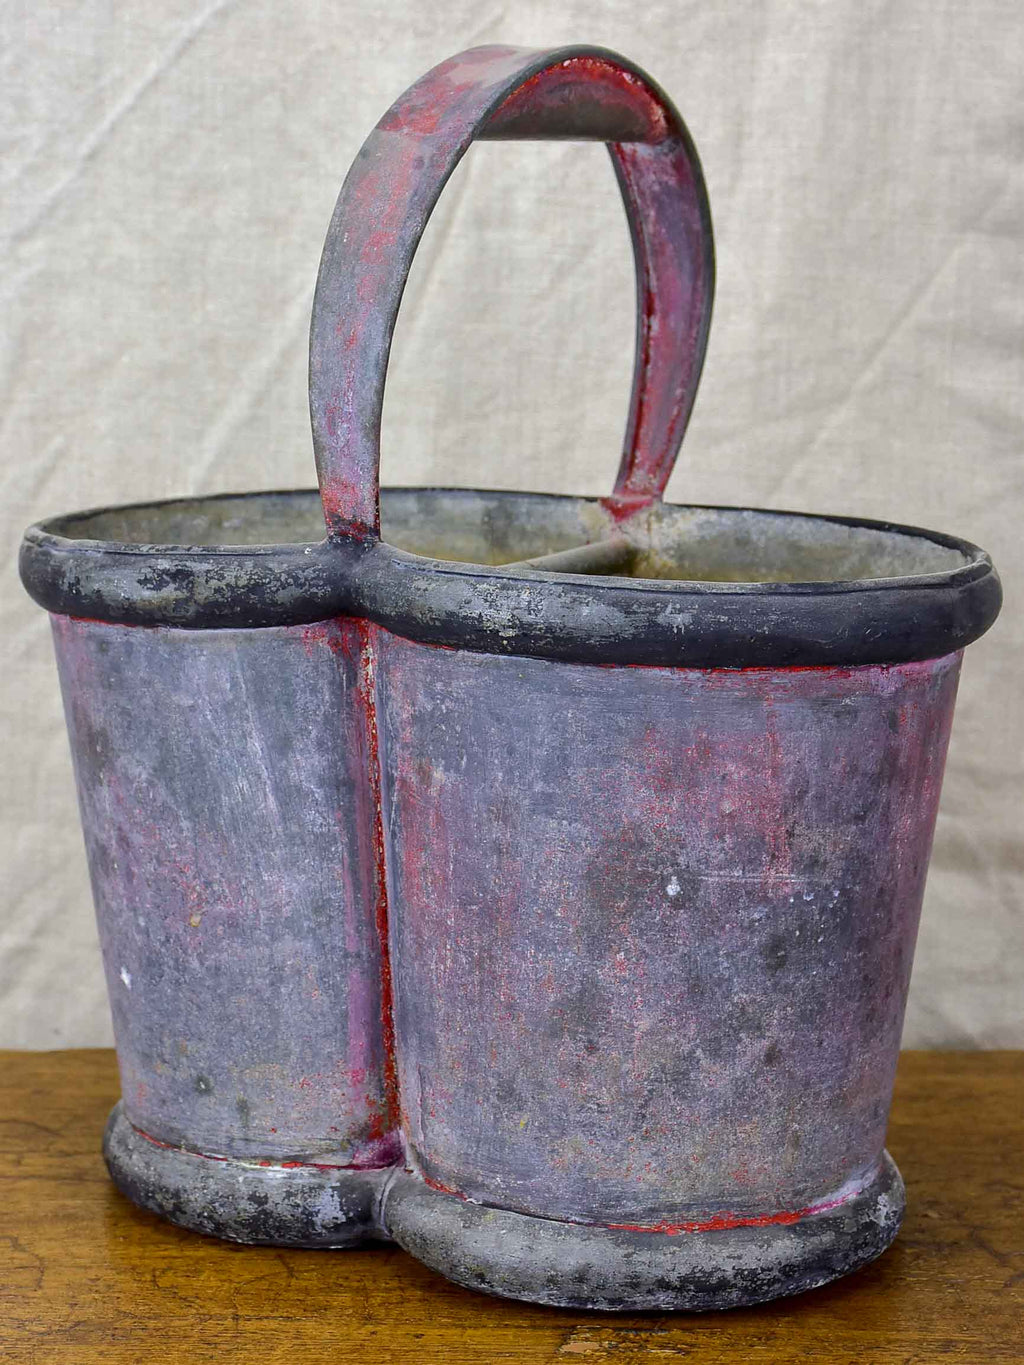 Rustic French bottle carrier